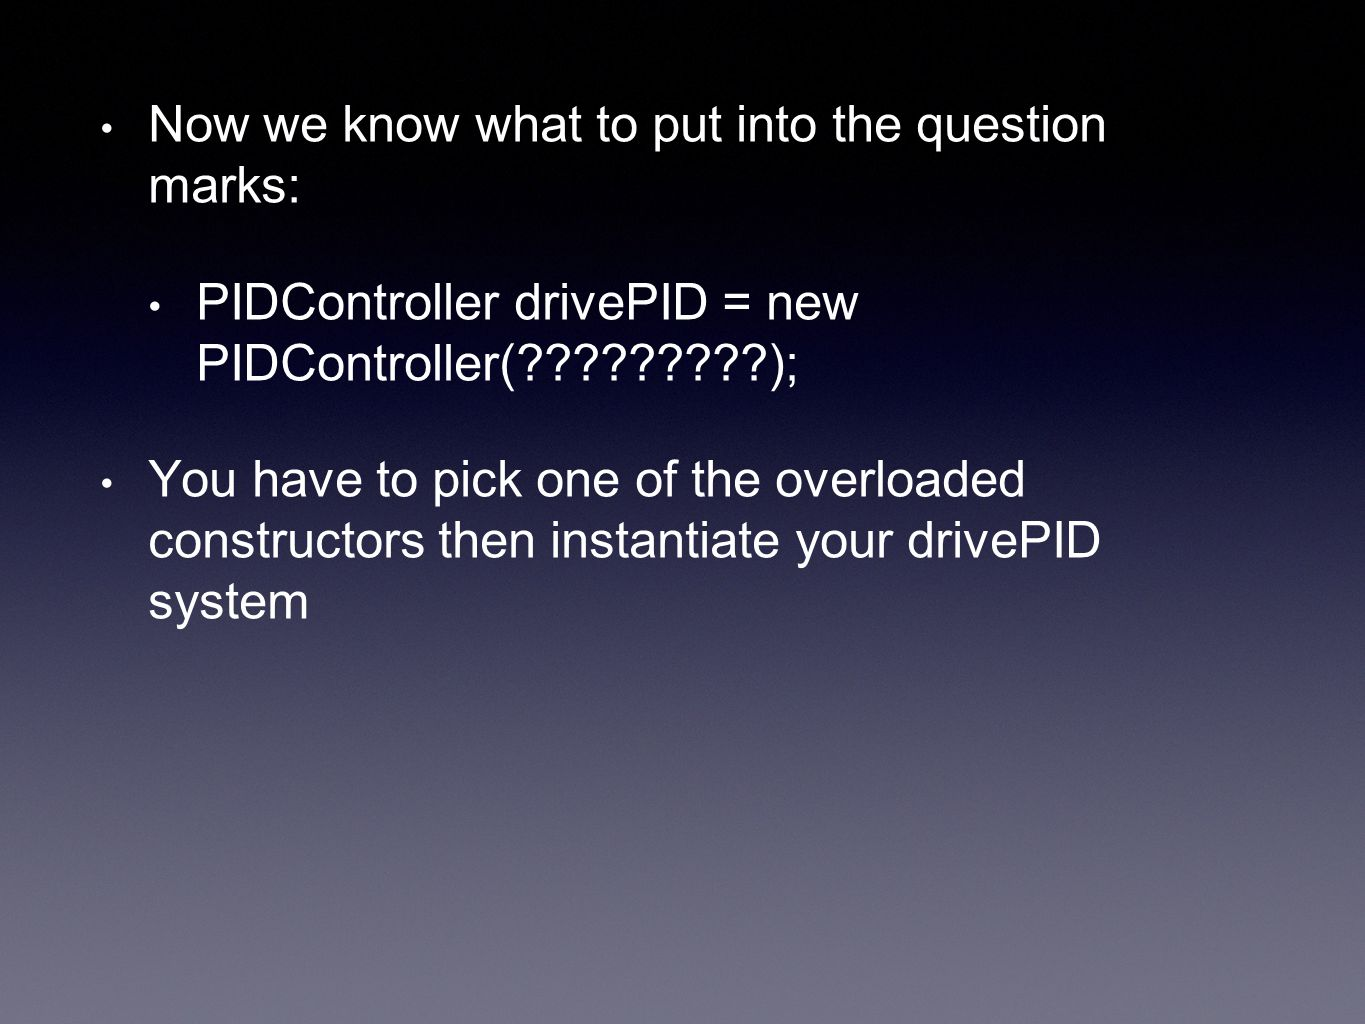 Now we know what to put into the question marks: PIDController drivePID = new PIDController(?????????); You have to pick one of the overloaded constructors then instantiate your drivePID system